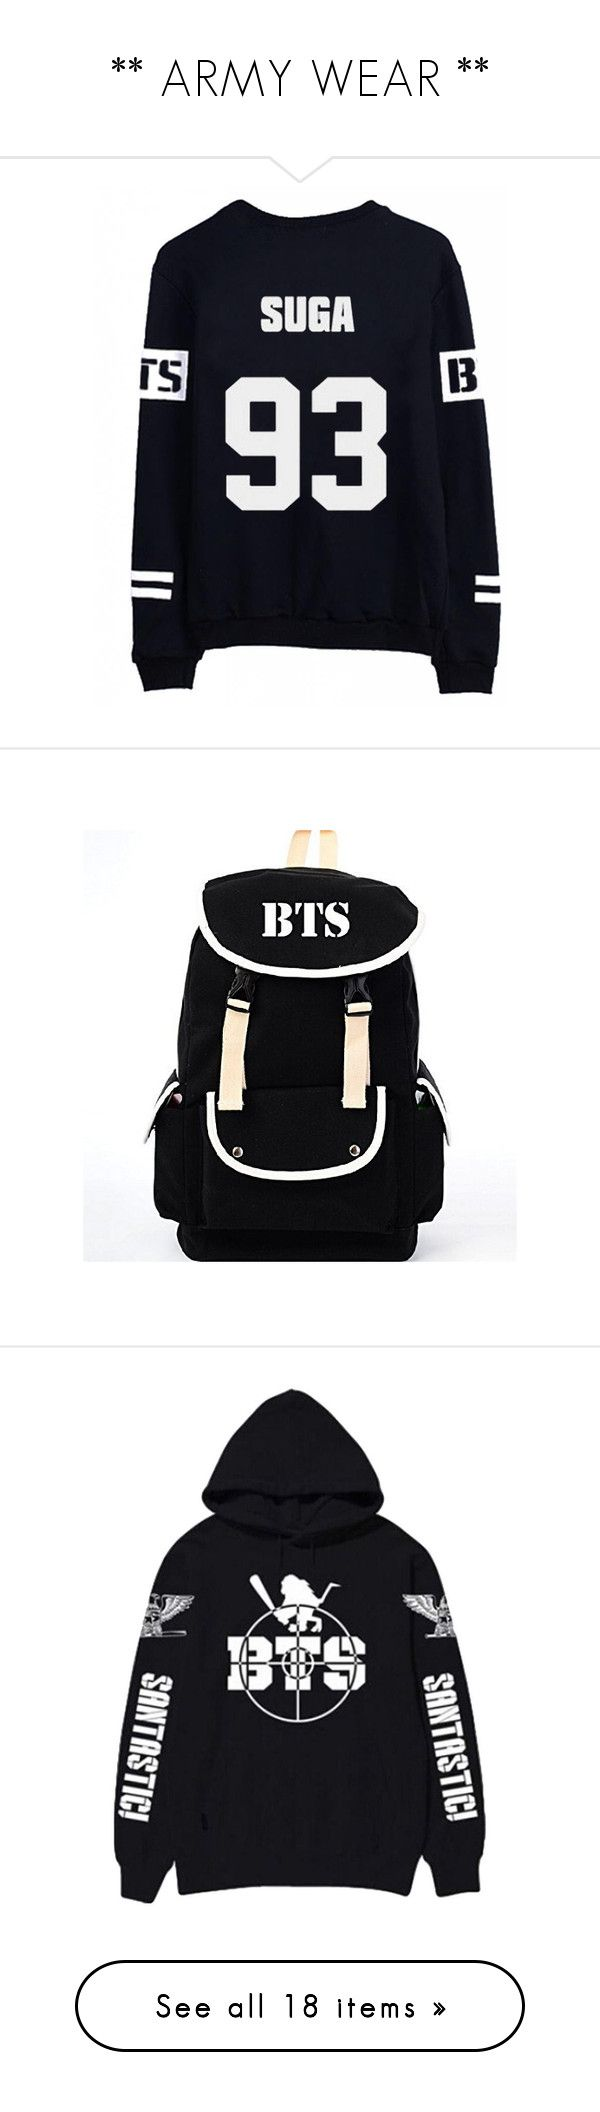 """""""** ARMY WEAR **"""" by seijous ❤ liked on Polyvore featuring tops, bags, canvas bag, black knapsack, black canvas rucksack, canvas rucksack, star bag, bts, shirts and baseball shirts"""